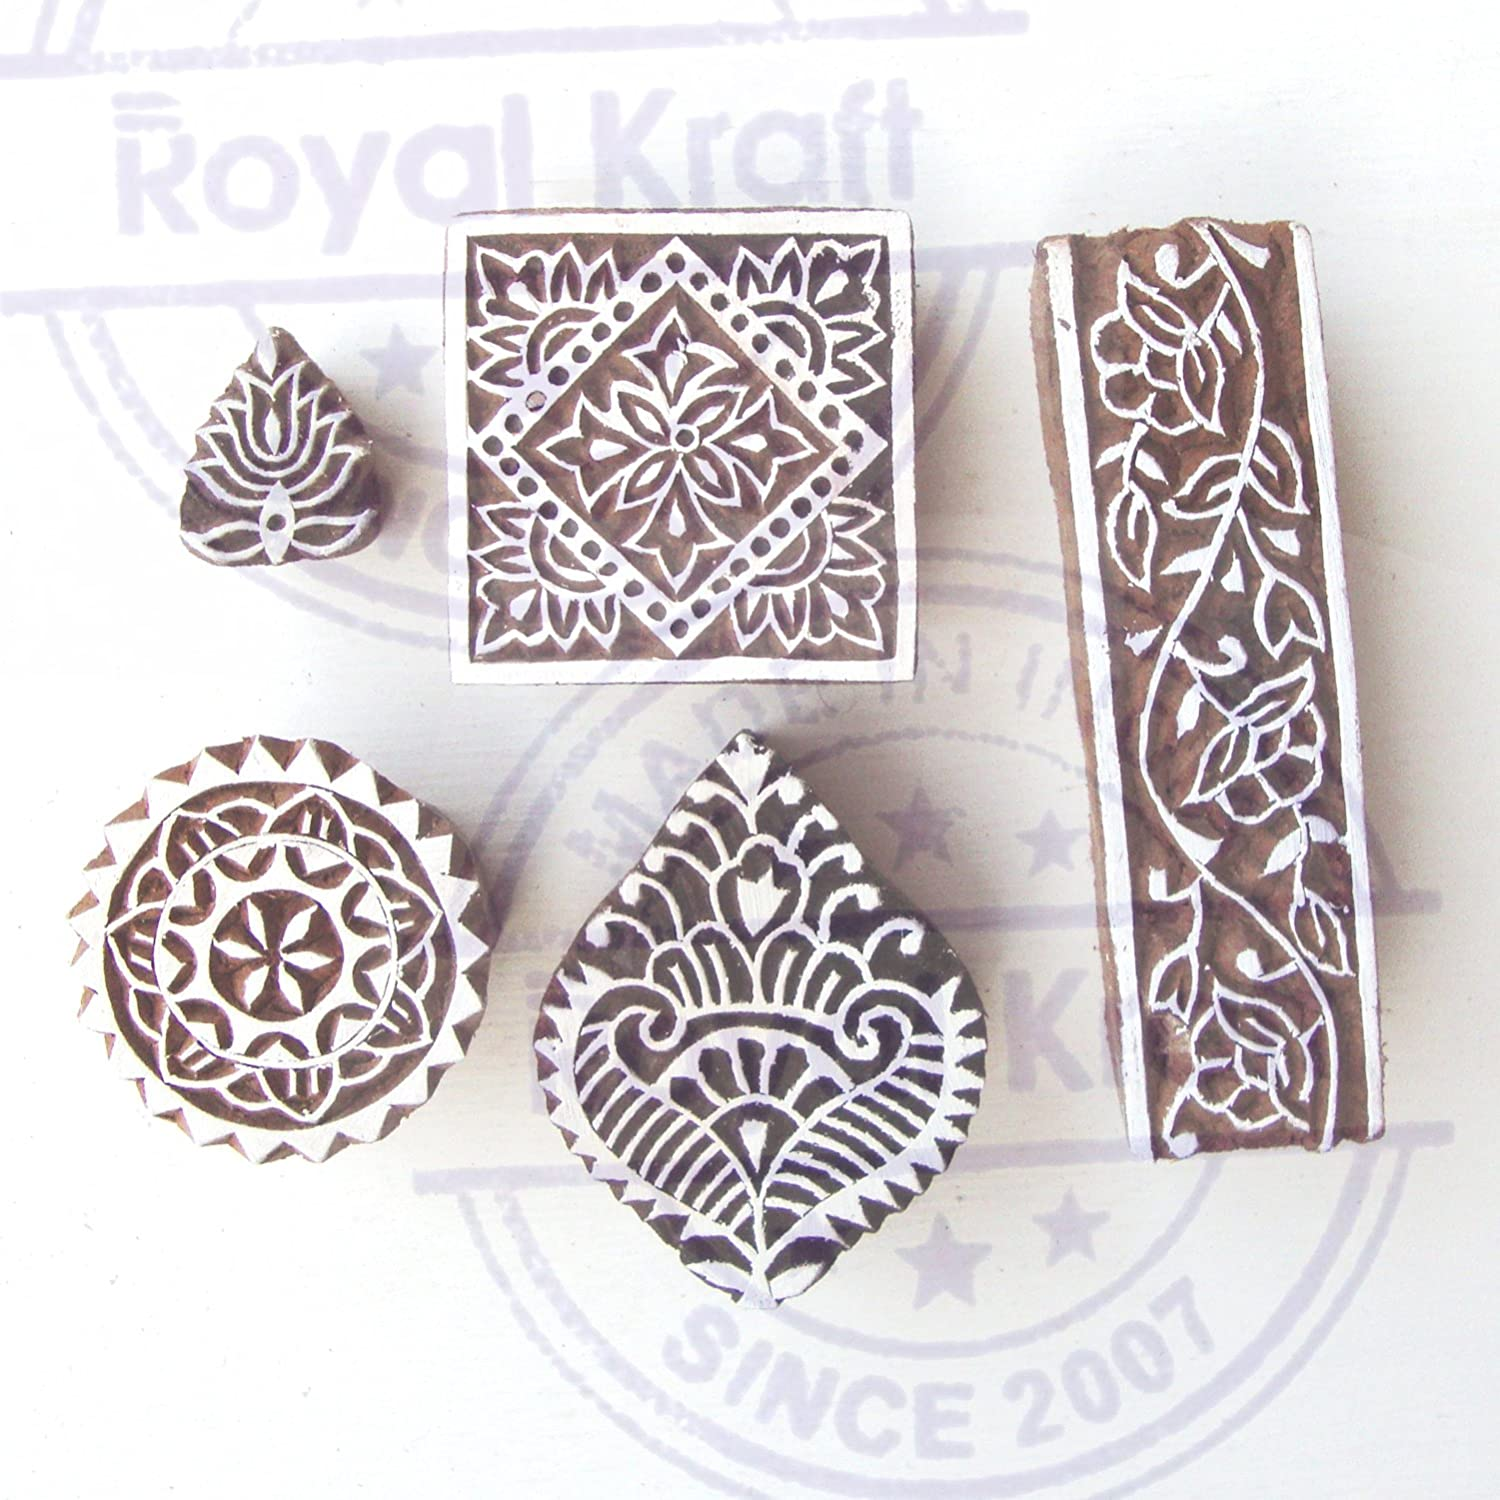 How to make your own hand carved stamps